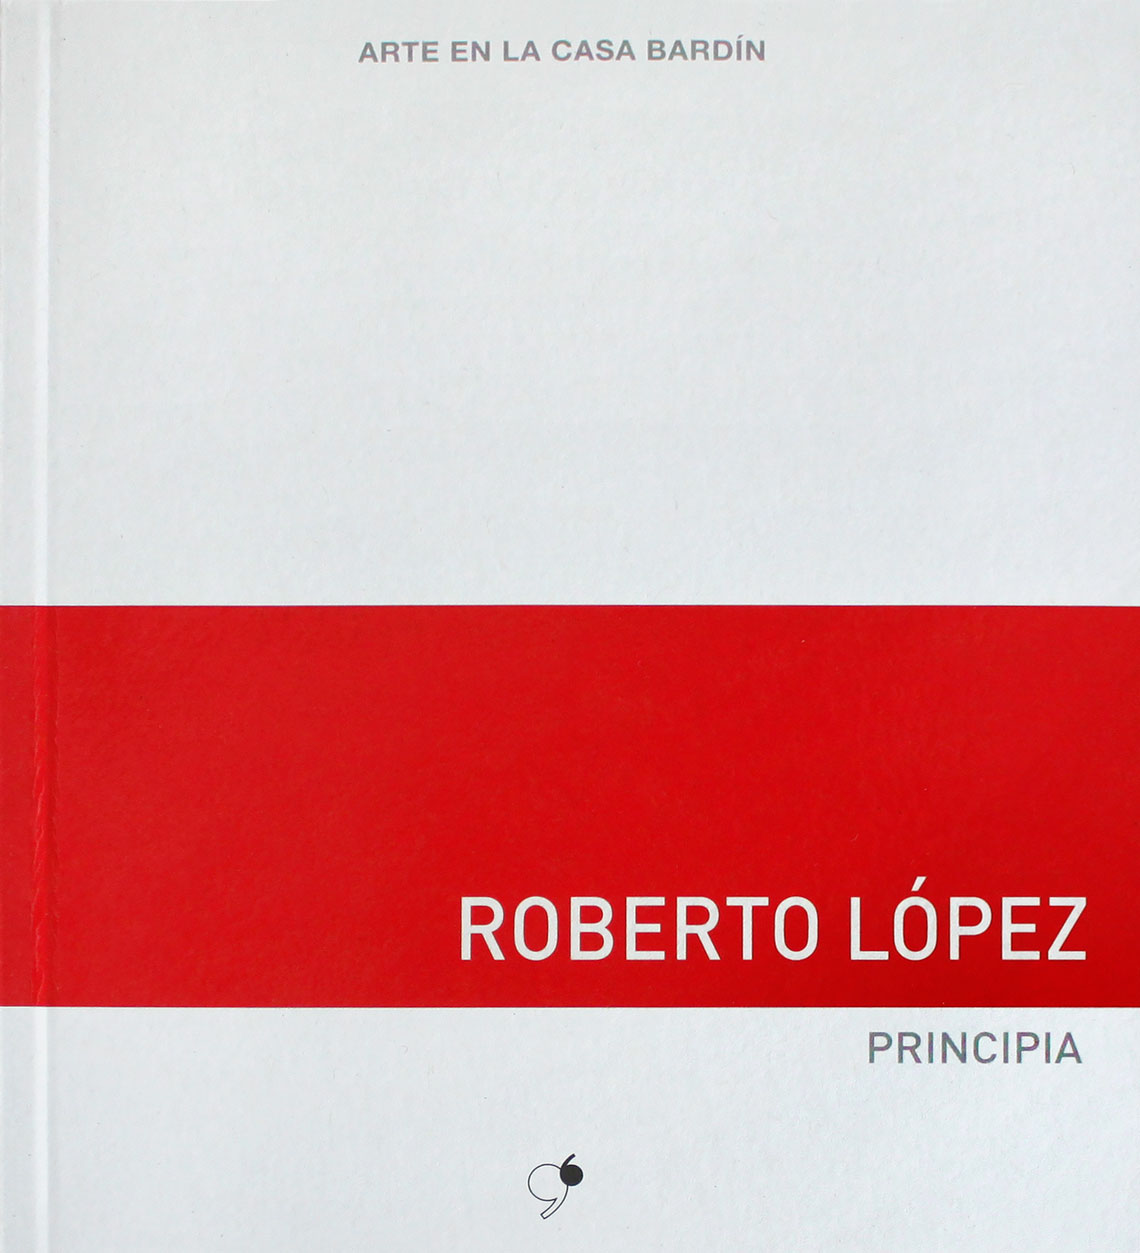 Exhibition catalogue / Roberto López / Principia